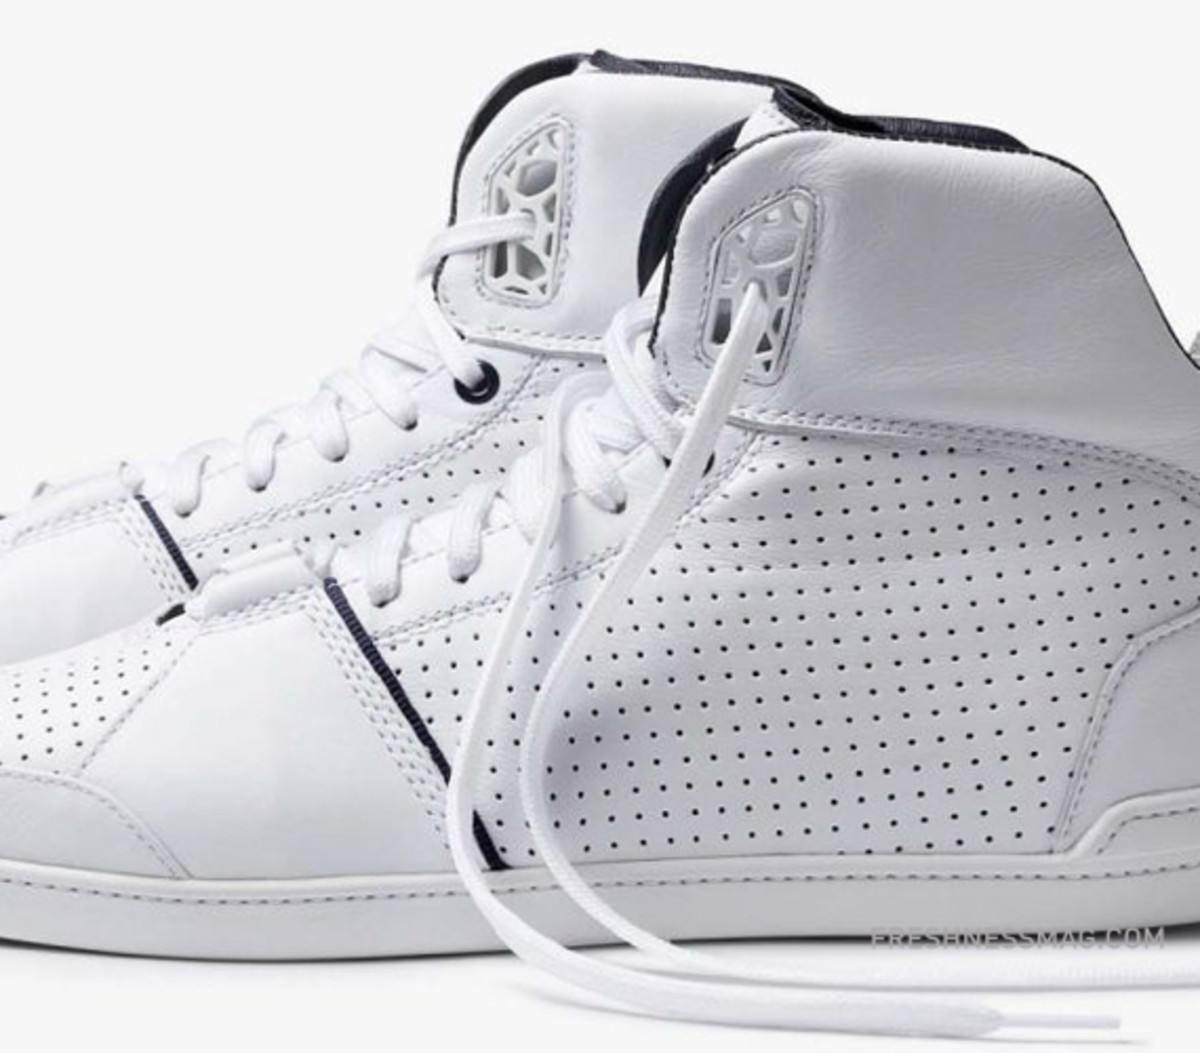 adidas-slvr-119-high-top-perforated-white-02